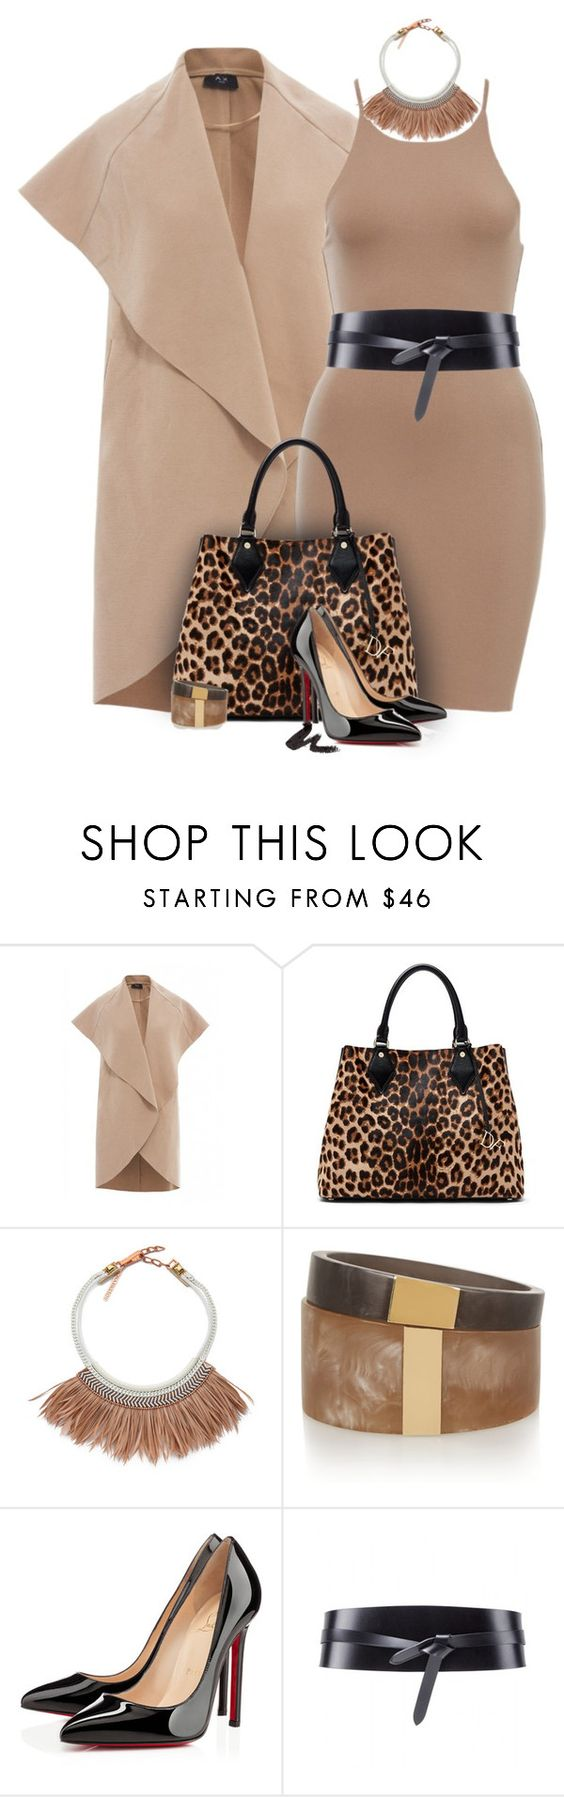 """Exotic Luxe"" by lisa-holt ❤ liked on Polyvore featuring AX Paris, Trilogy, Diane Von Furstenberg, Fiona Paxton, Isabel Marant, Christian Louboutin and MAKE UP FOR EVER"